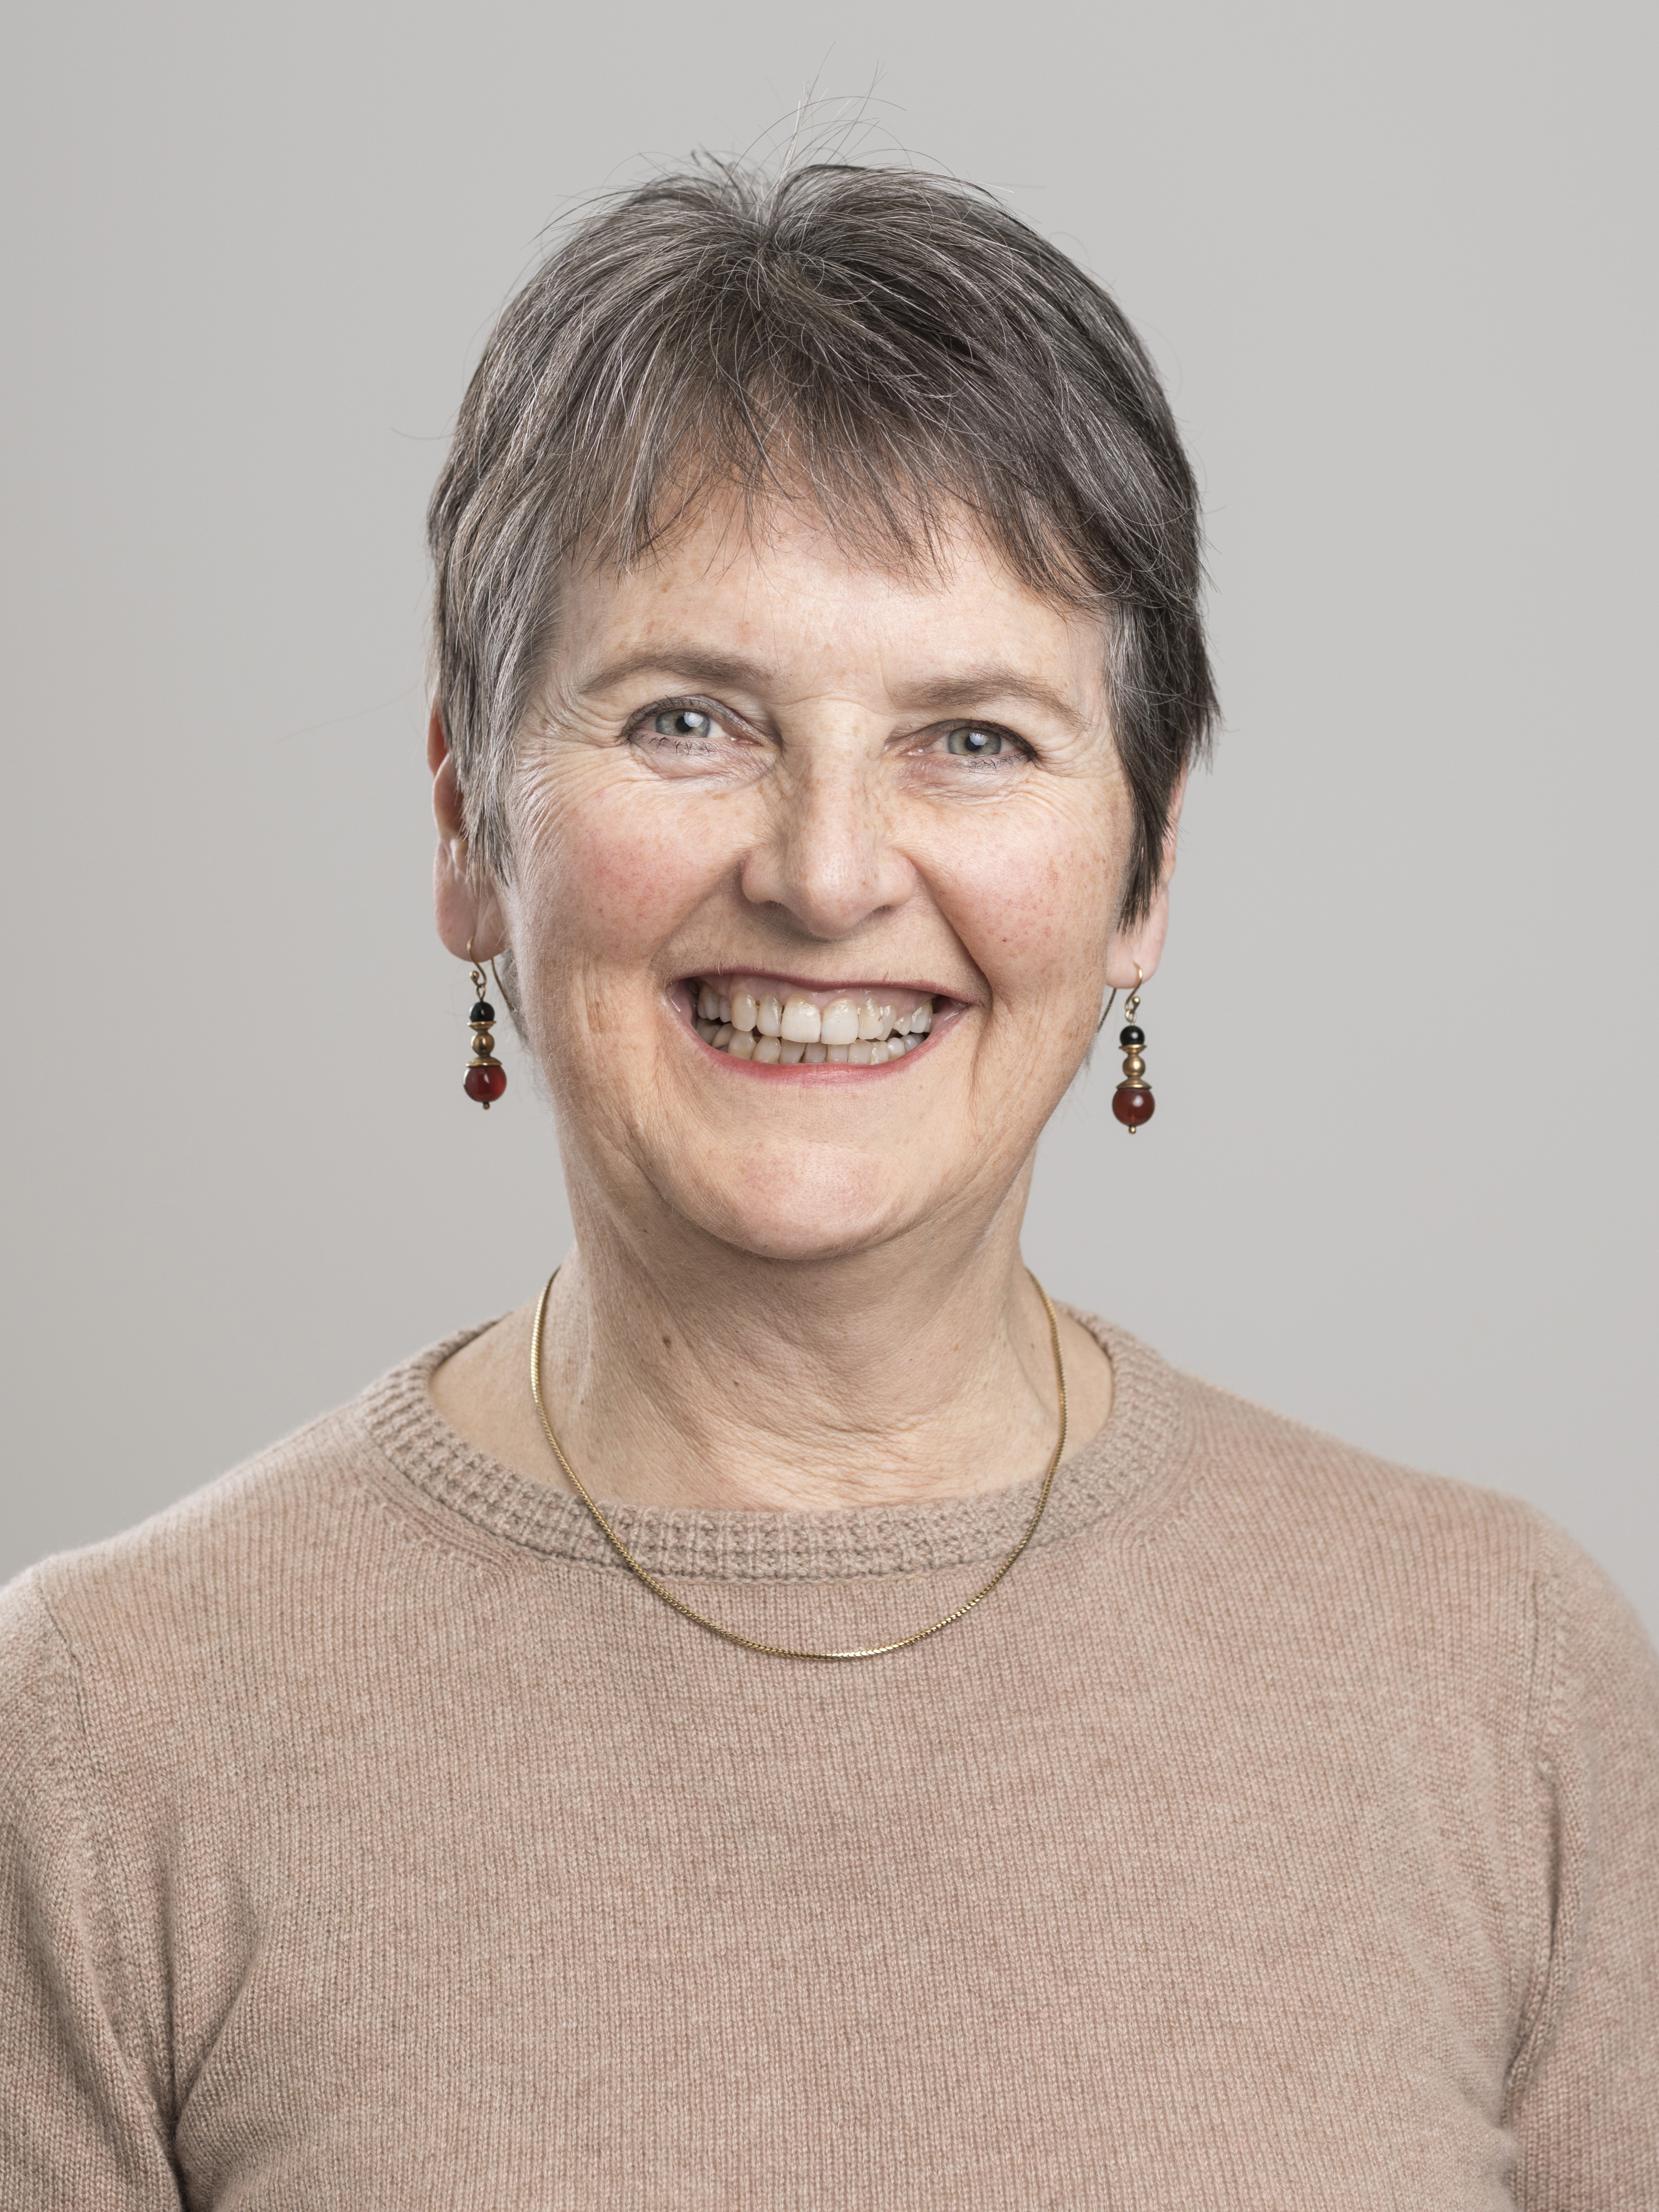 An image of Dr Lorraine Baker